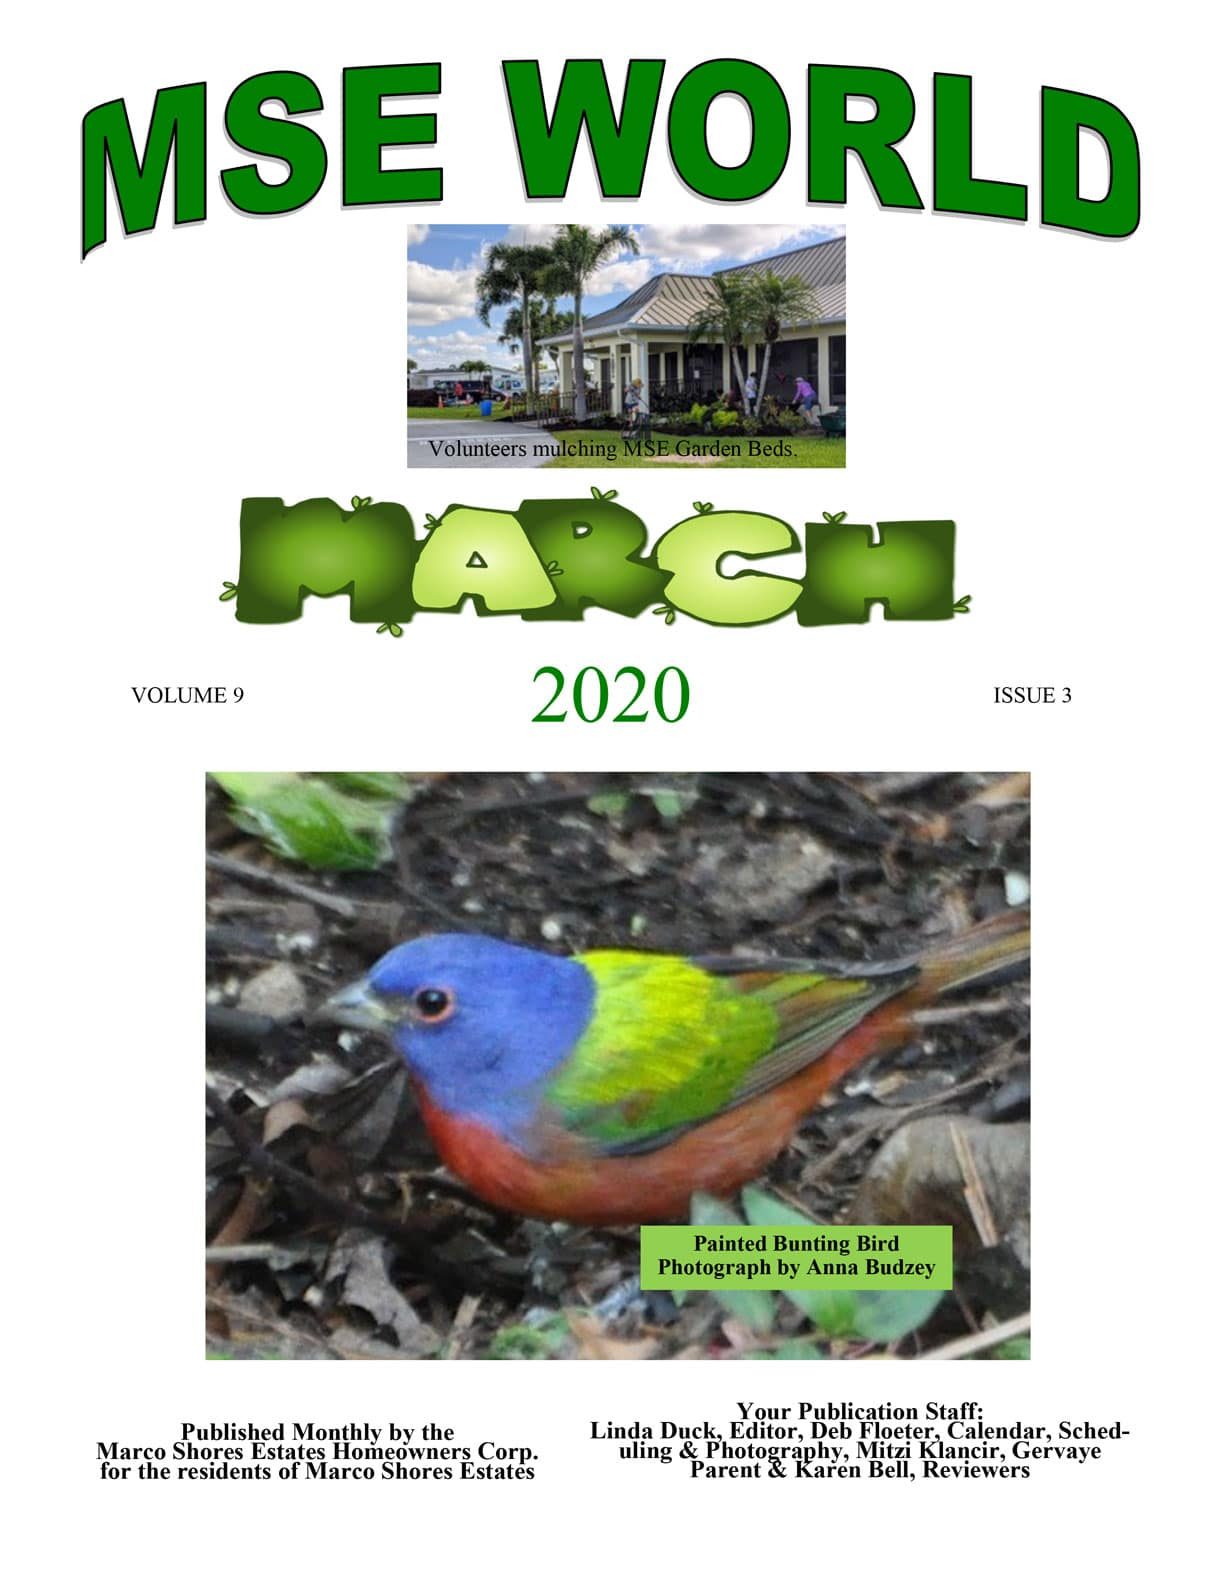 MSE World March 2020 Edition